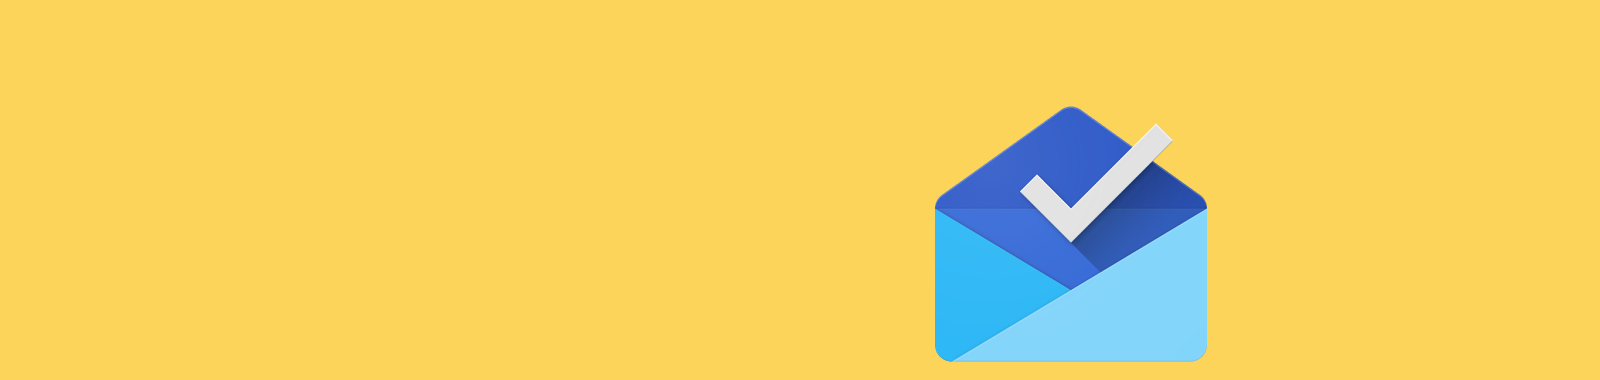 Why You Need the New Inbox for Gmail